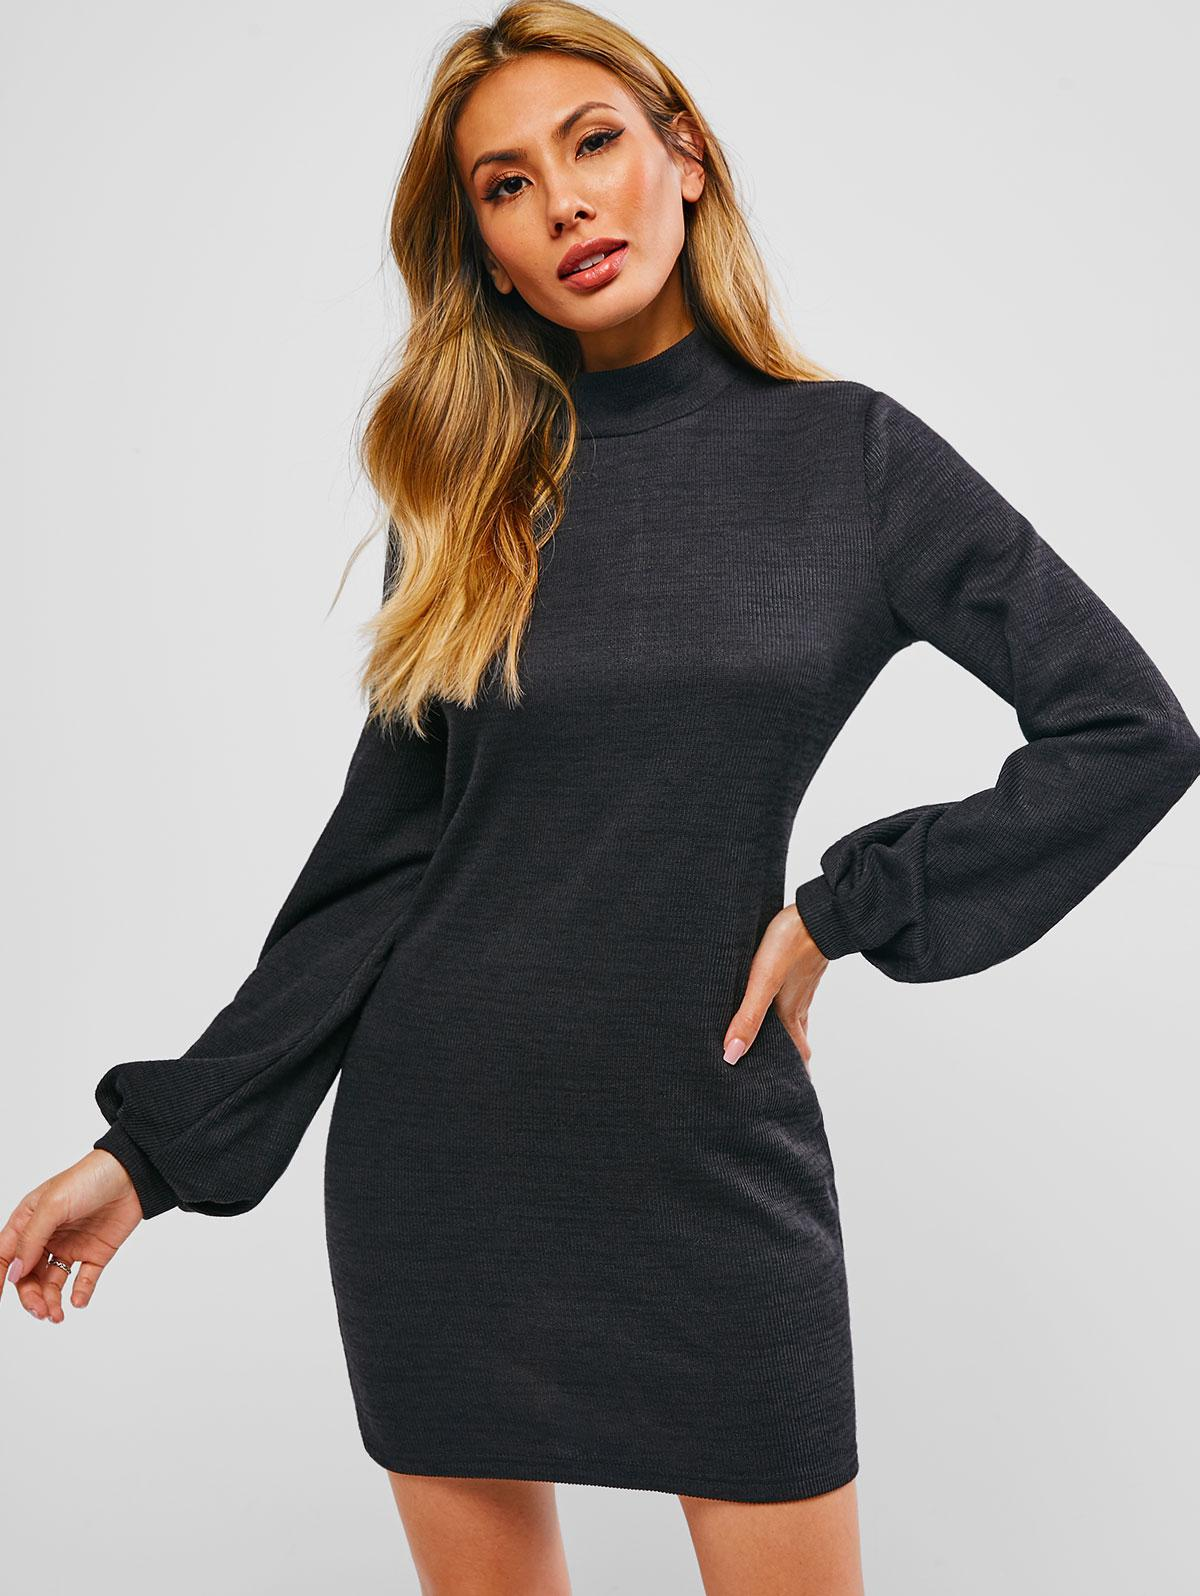 ZAFUL Bishop Sleeve Mock Neck Mini Sweater Dress